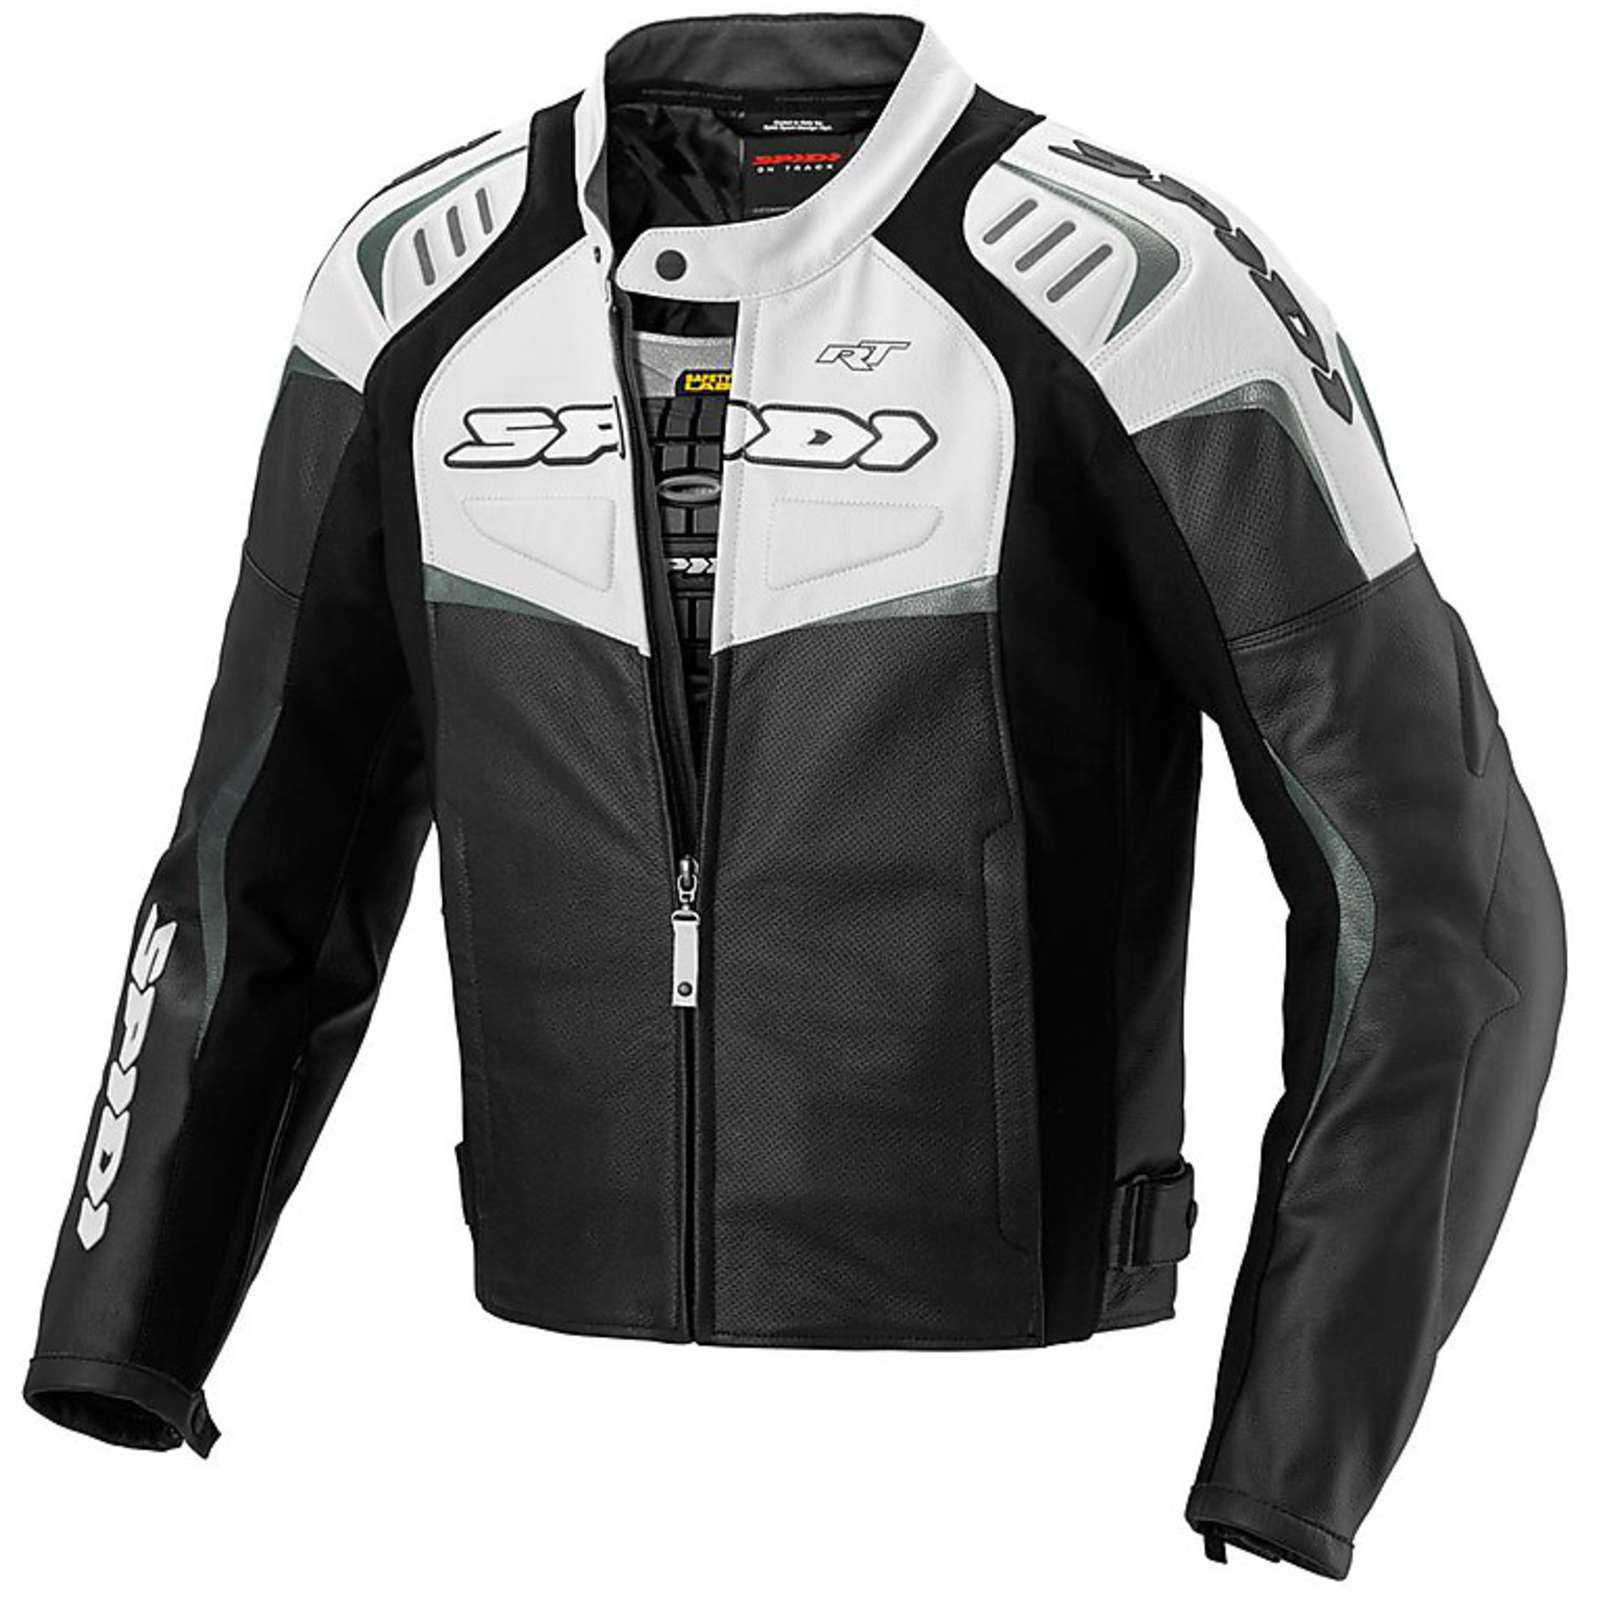 Vetements Dainese Cuir Outlet Spidi Vestes Moto Veste Rt Casque 4x1eqg JT1c3lFK